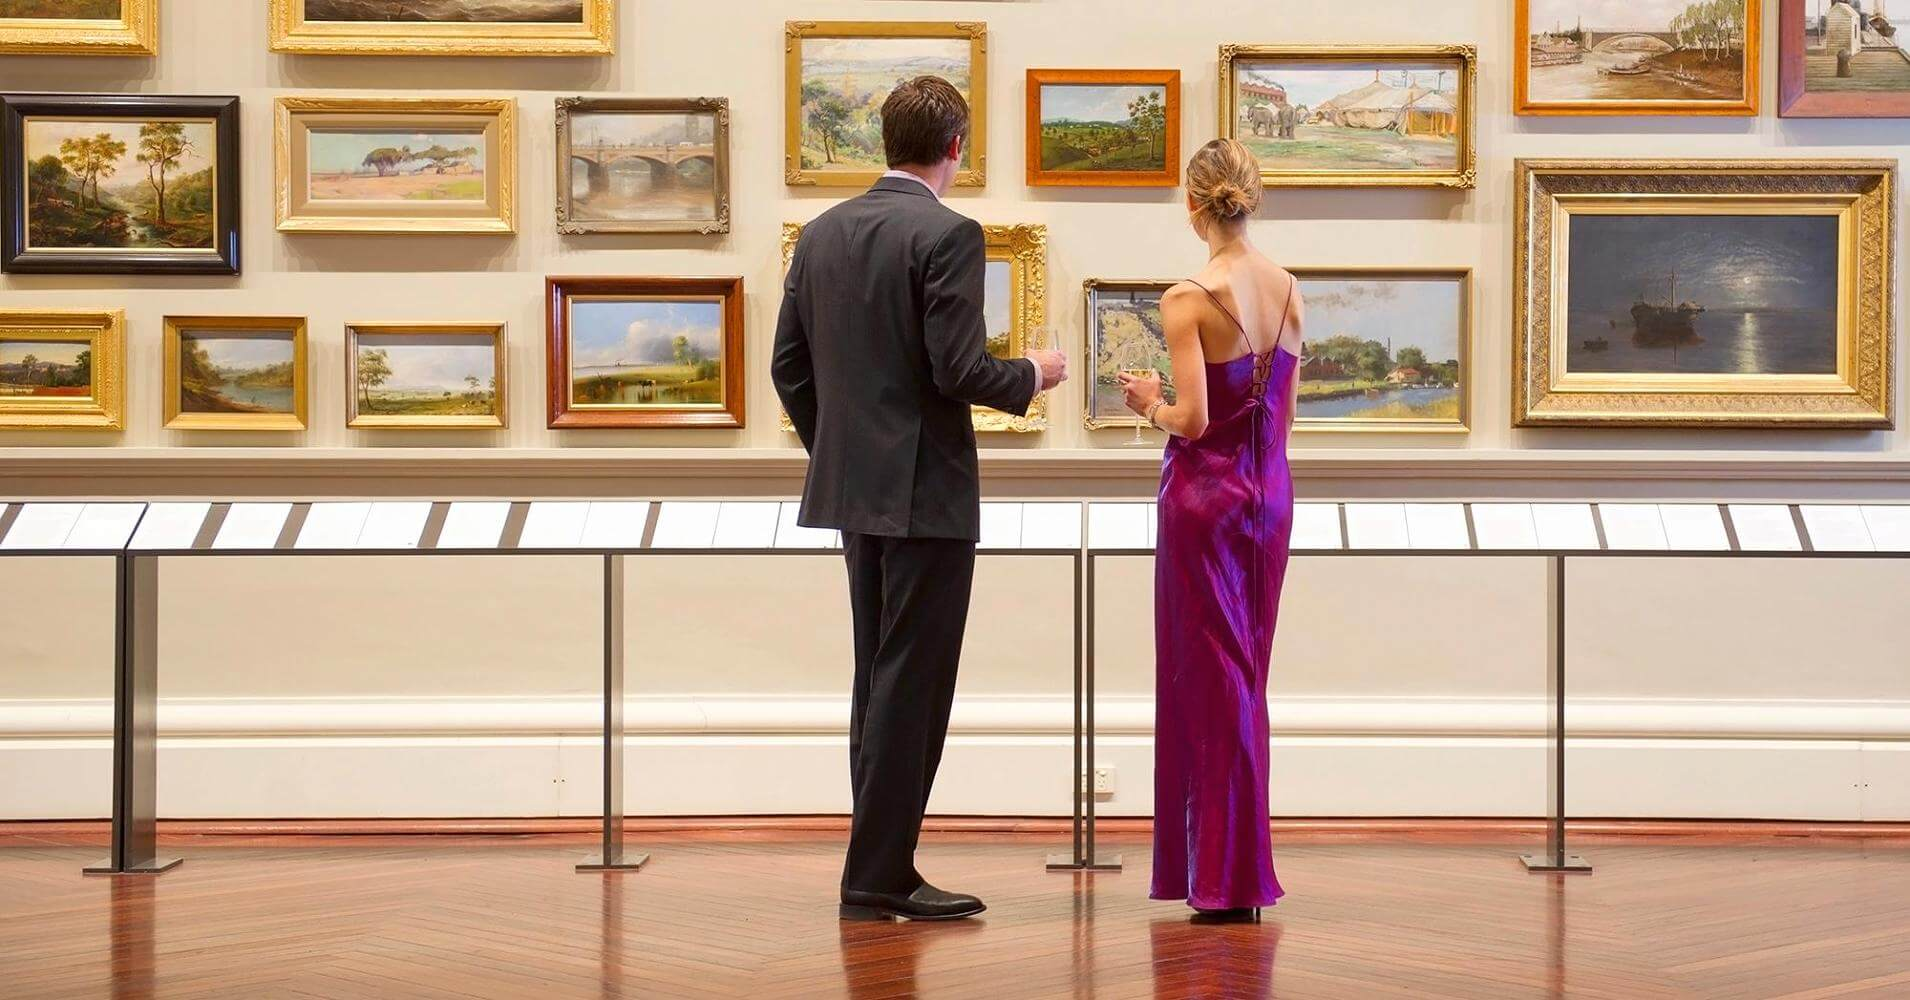 Behind the Scenes in the Fine Art Investment World